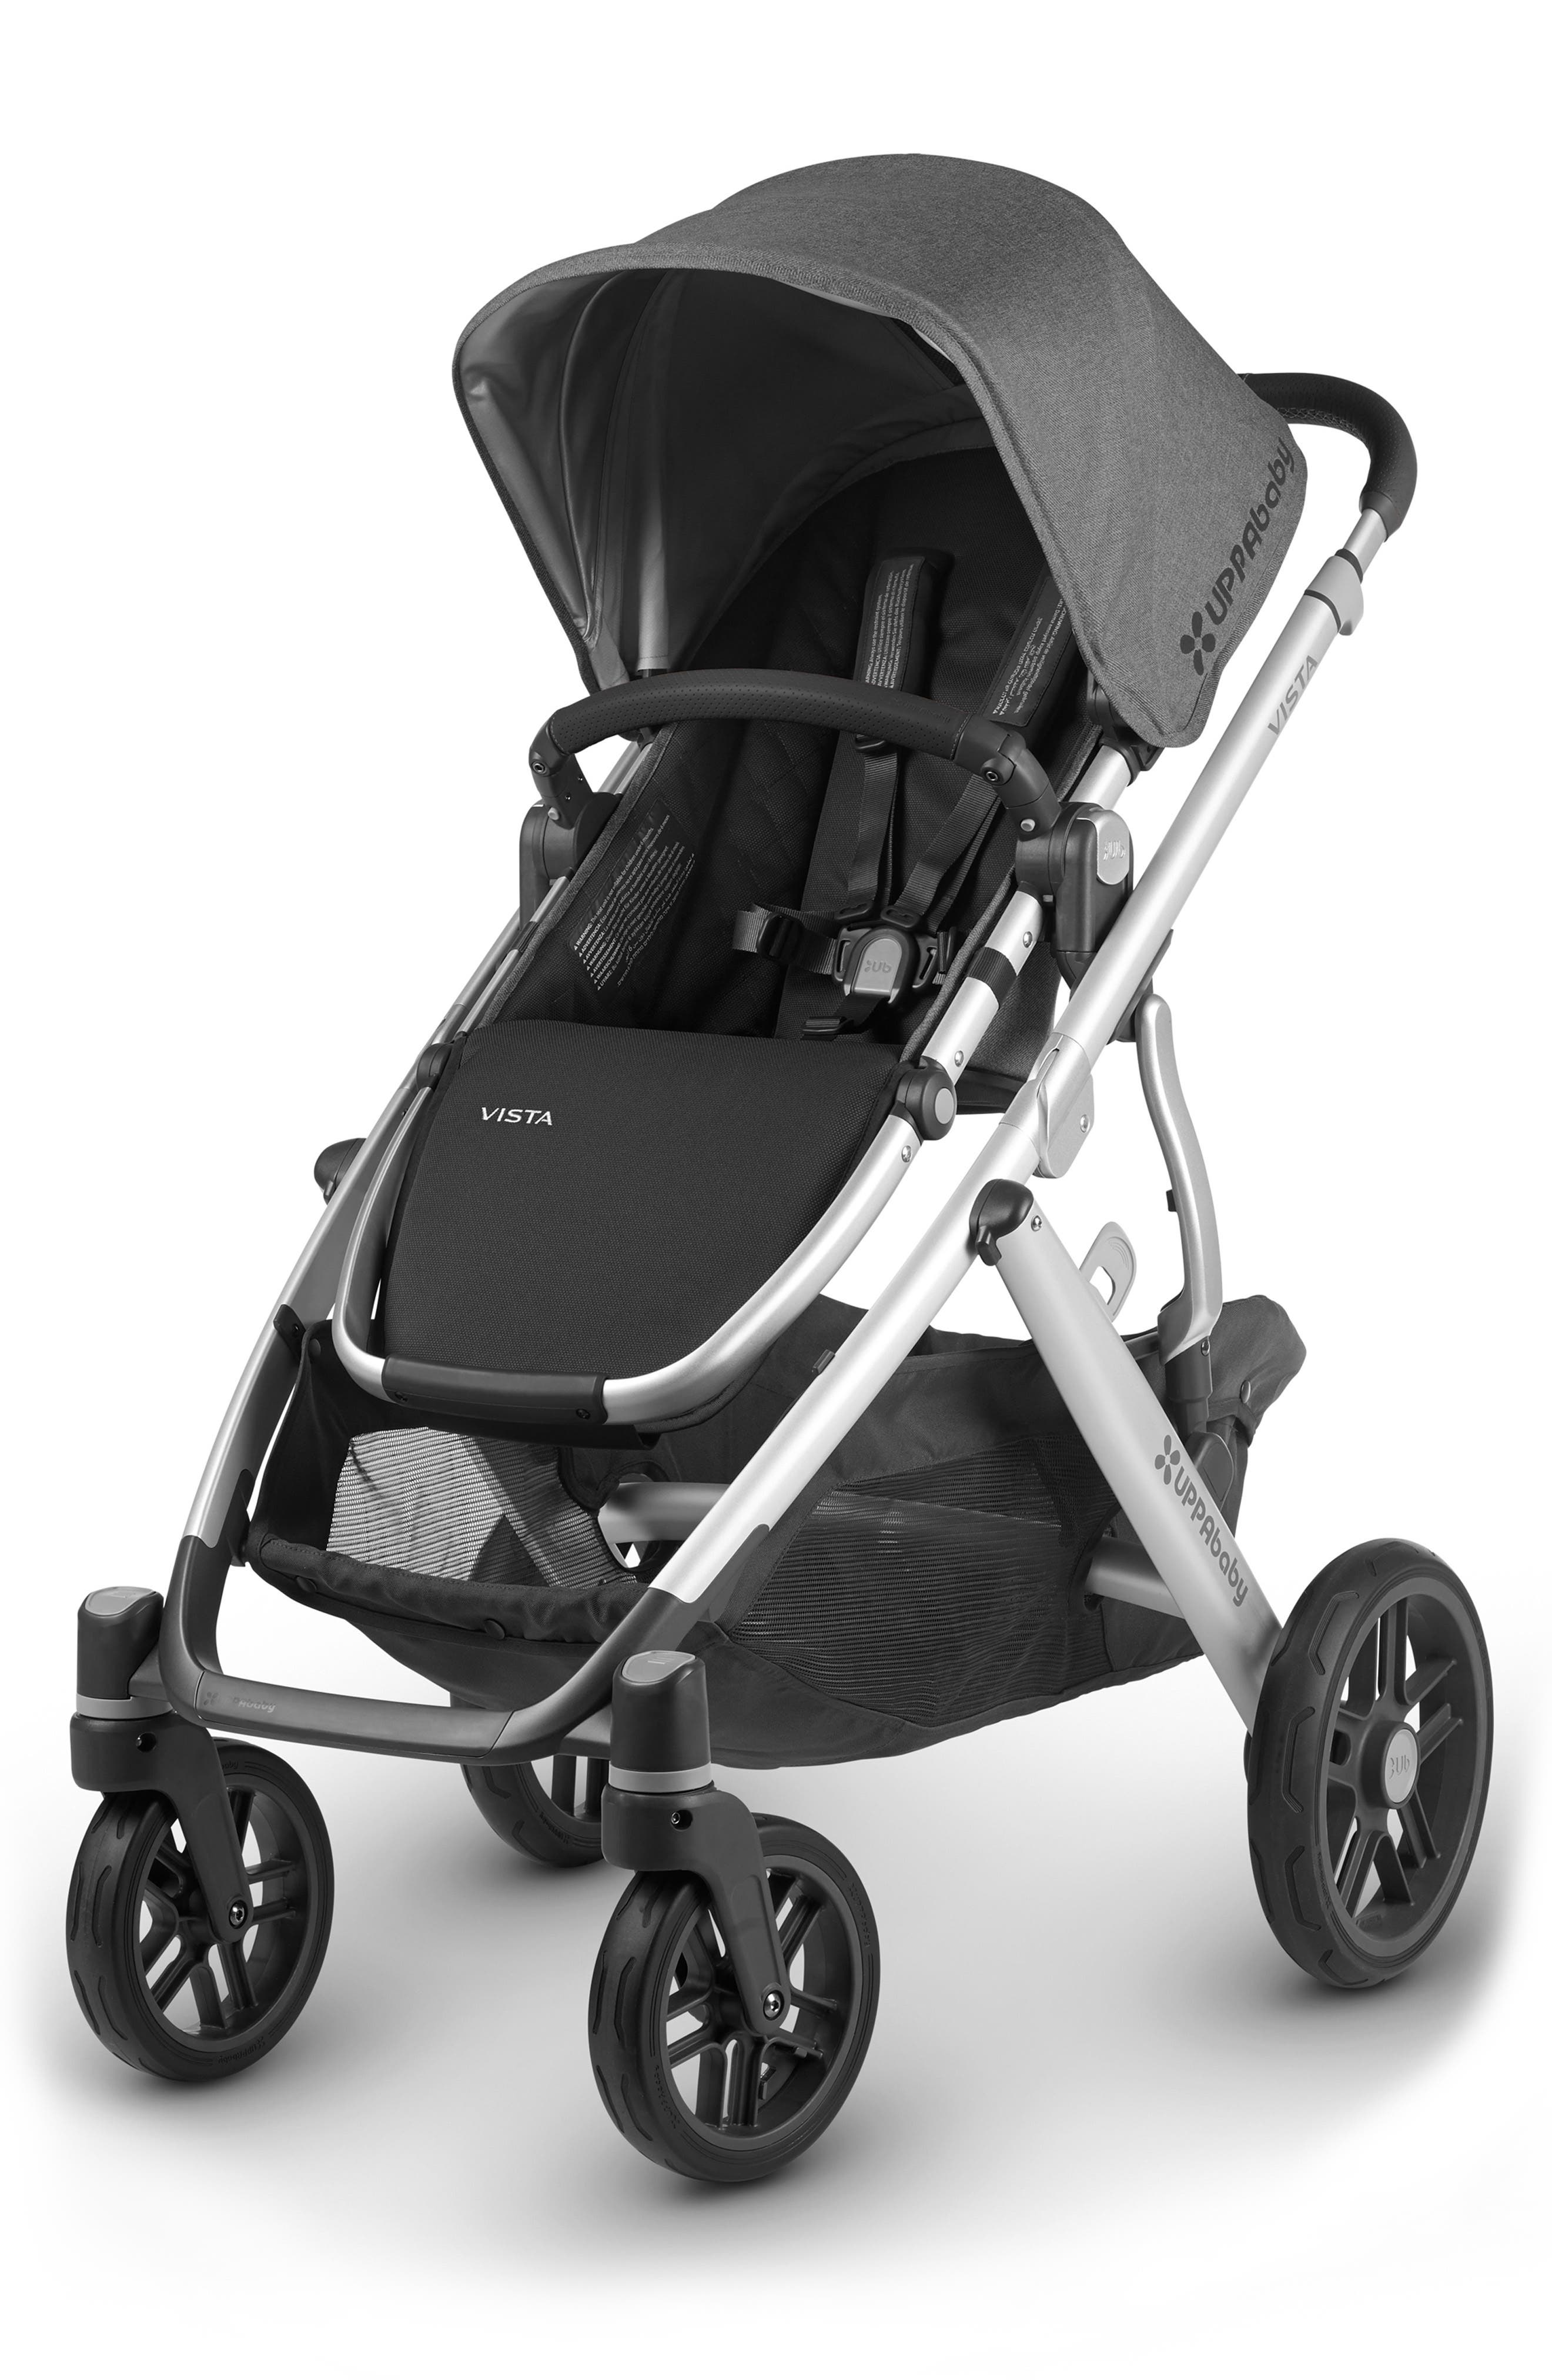 2018 VISTA Aluminum Frame Convertible Complete Stroller with Leather Trim,                         Main,                         color, Jordan Charcoal/ Silver